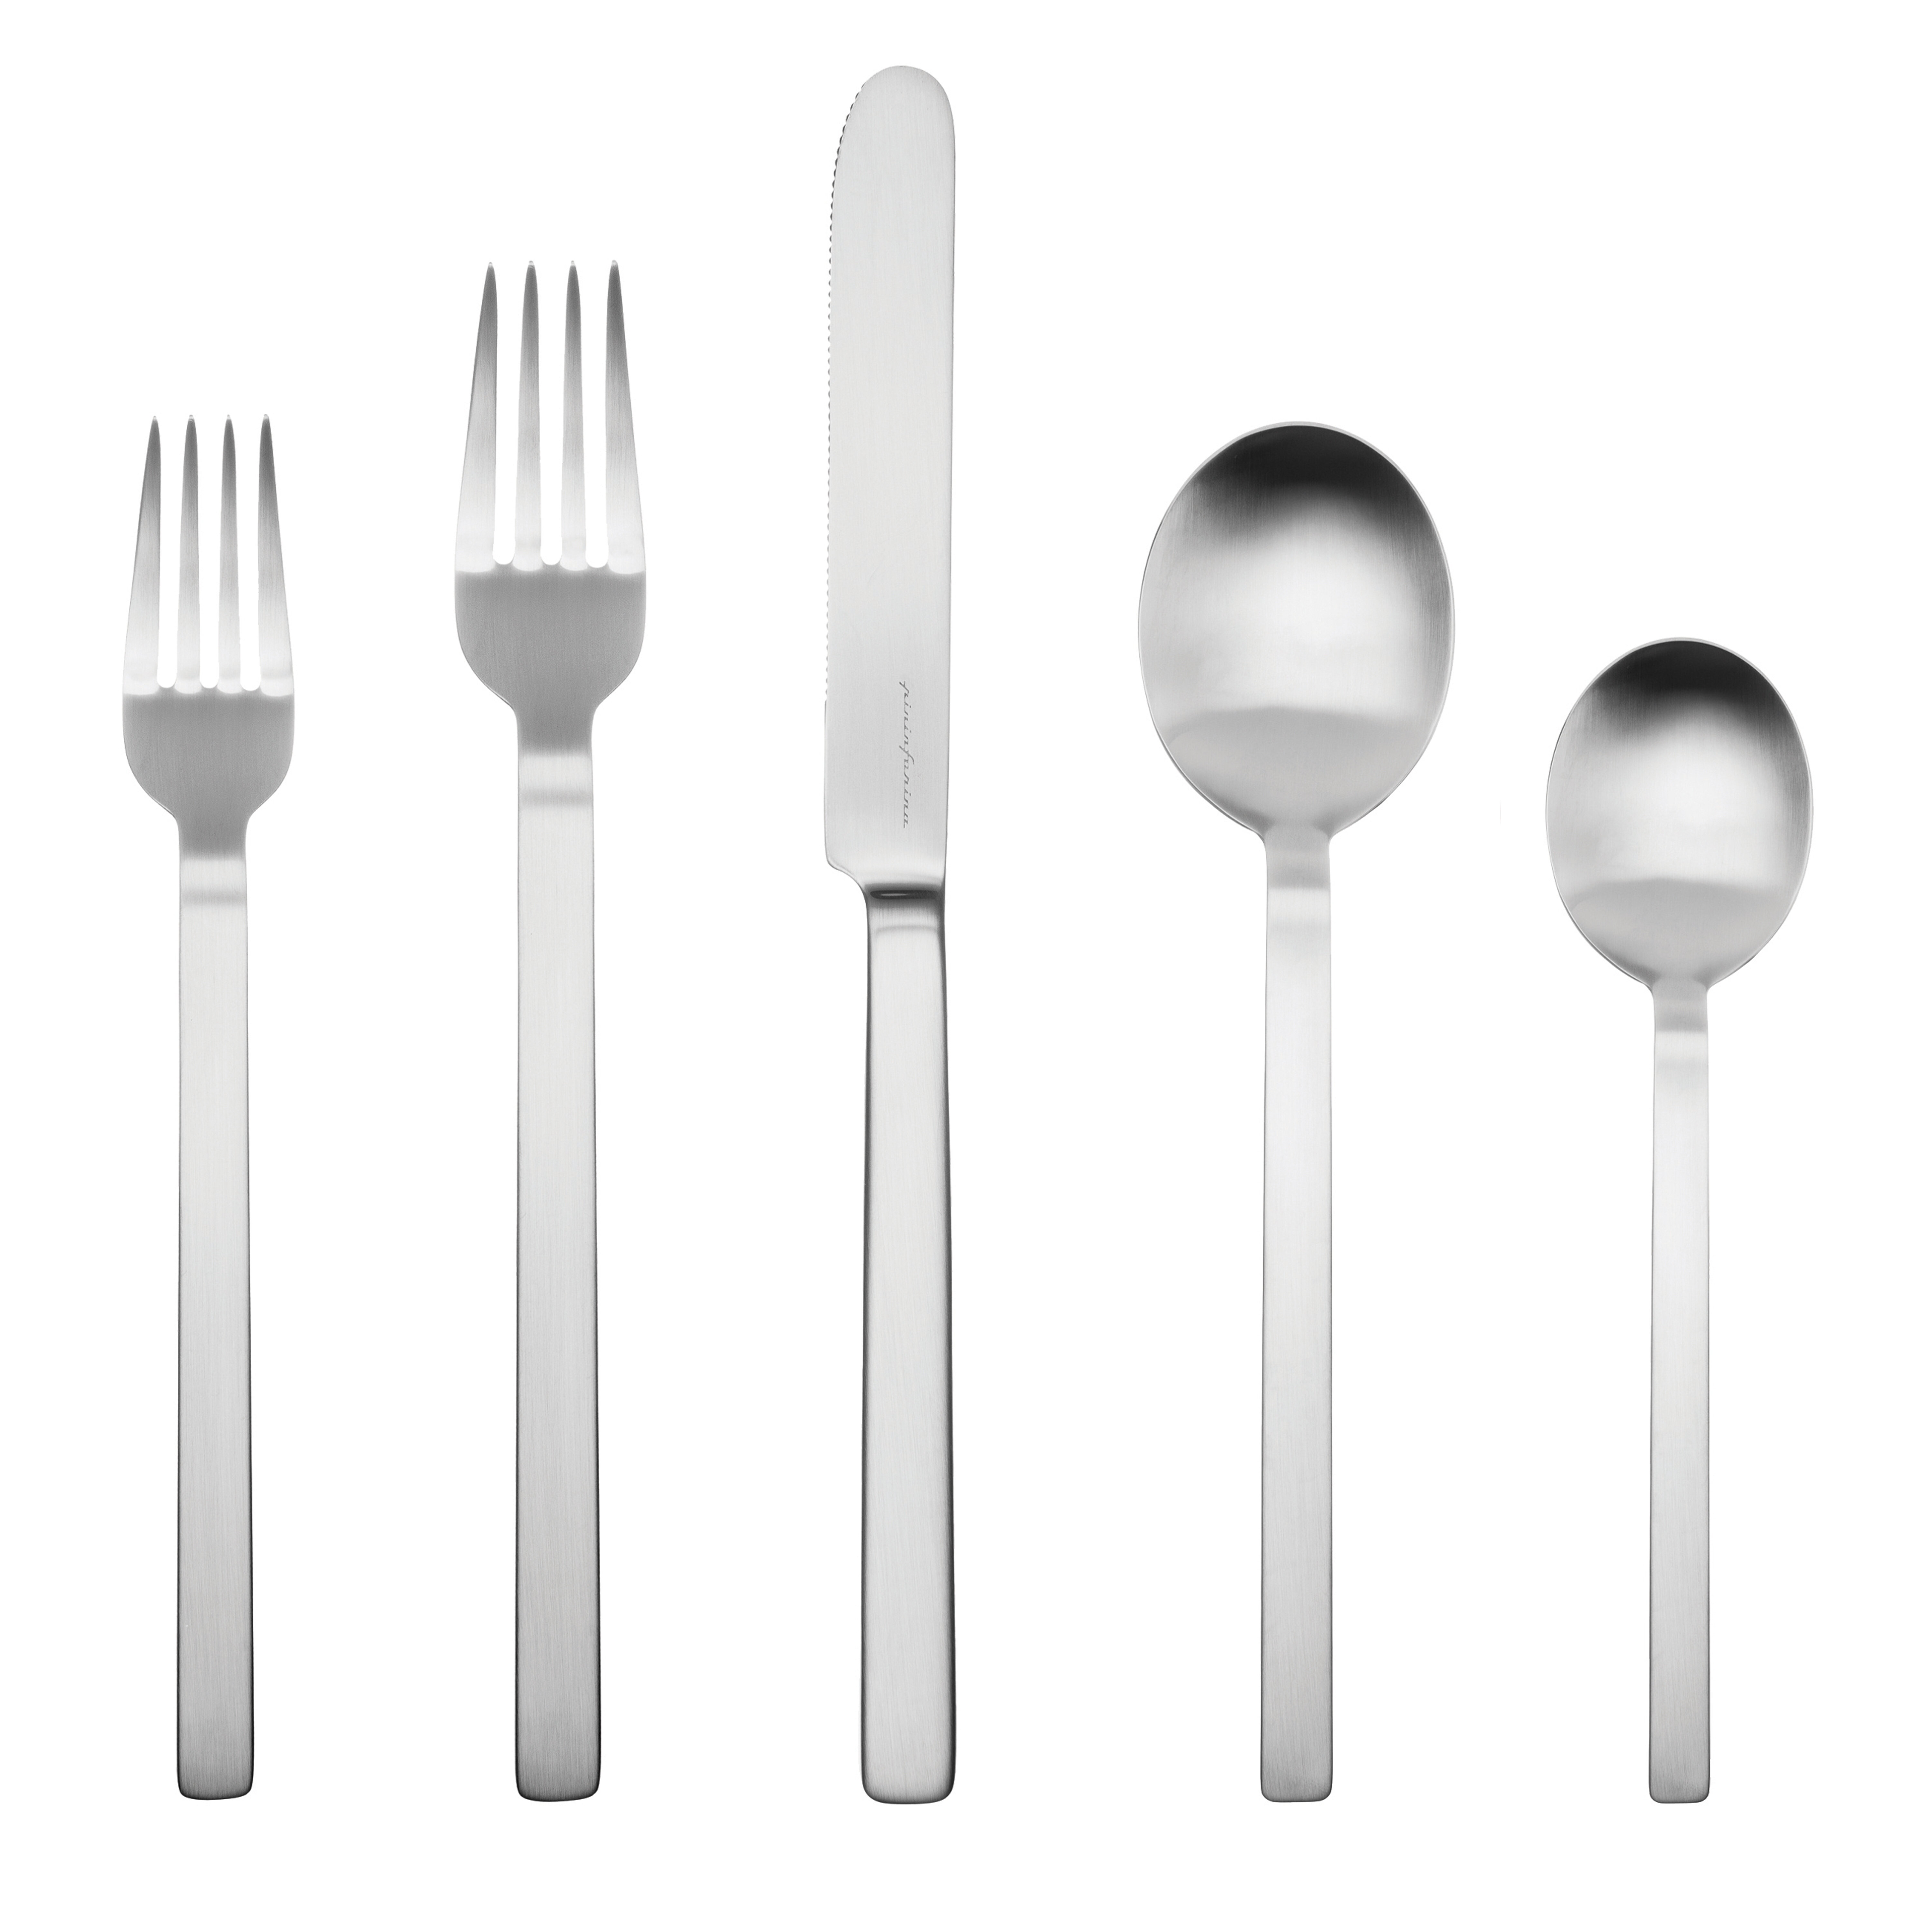 20pcs Silverware Set 18//10 Stainless Steel Black Spoon Cutlery Set,Service for 4